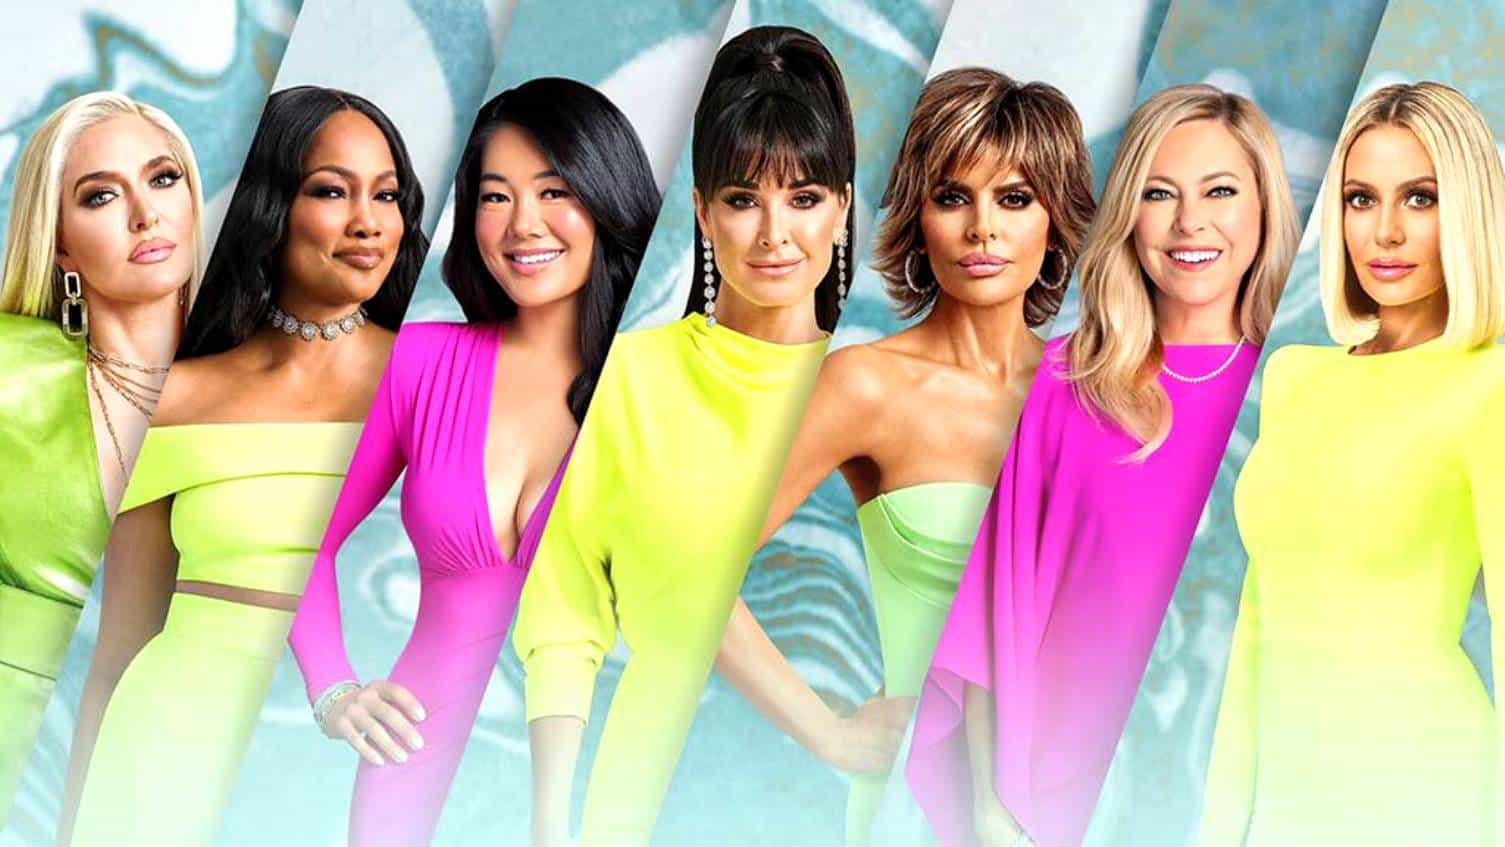 """VIDEO: Watch RHOBH Season 11 Trailer! Erika Jayne Is Confronted About Missing Money From """"Orphans And Widows"""" As She Tells Sutton Stracke to """"Shut the F**k Up,"""" Newbie Crystal Kung Minkoff Fights With Sutton, Plus Kyle Says Scott Disick Is """"Too Damn Old"""" For Amelia Hamlin"""